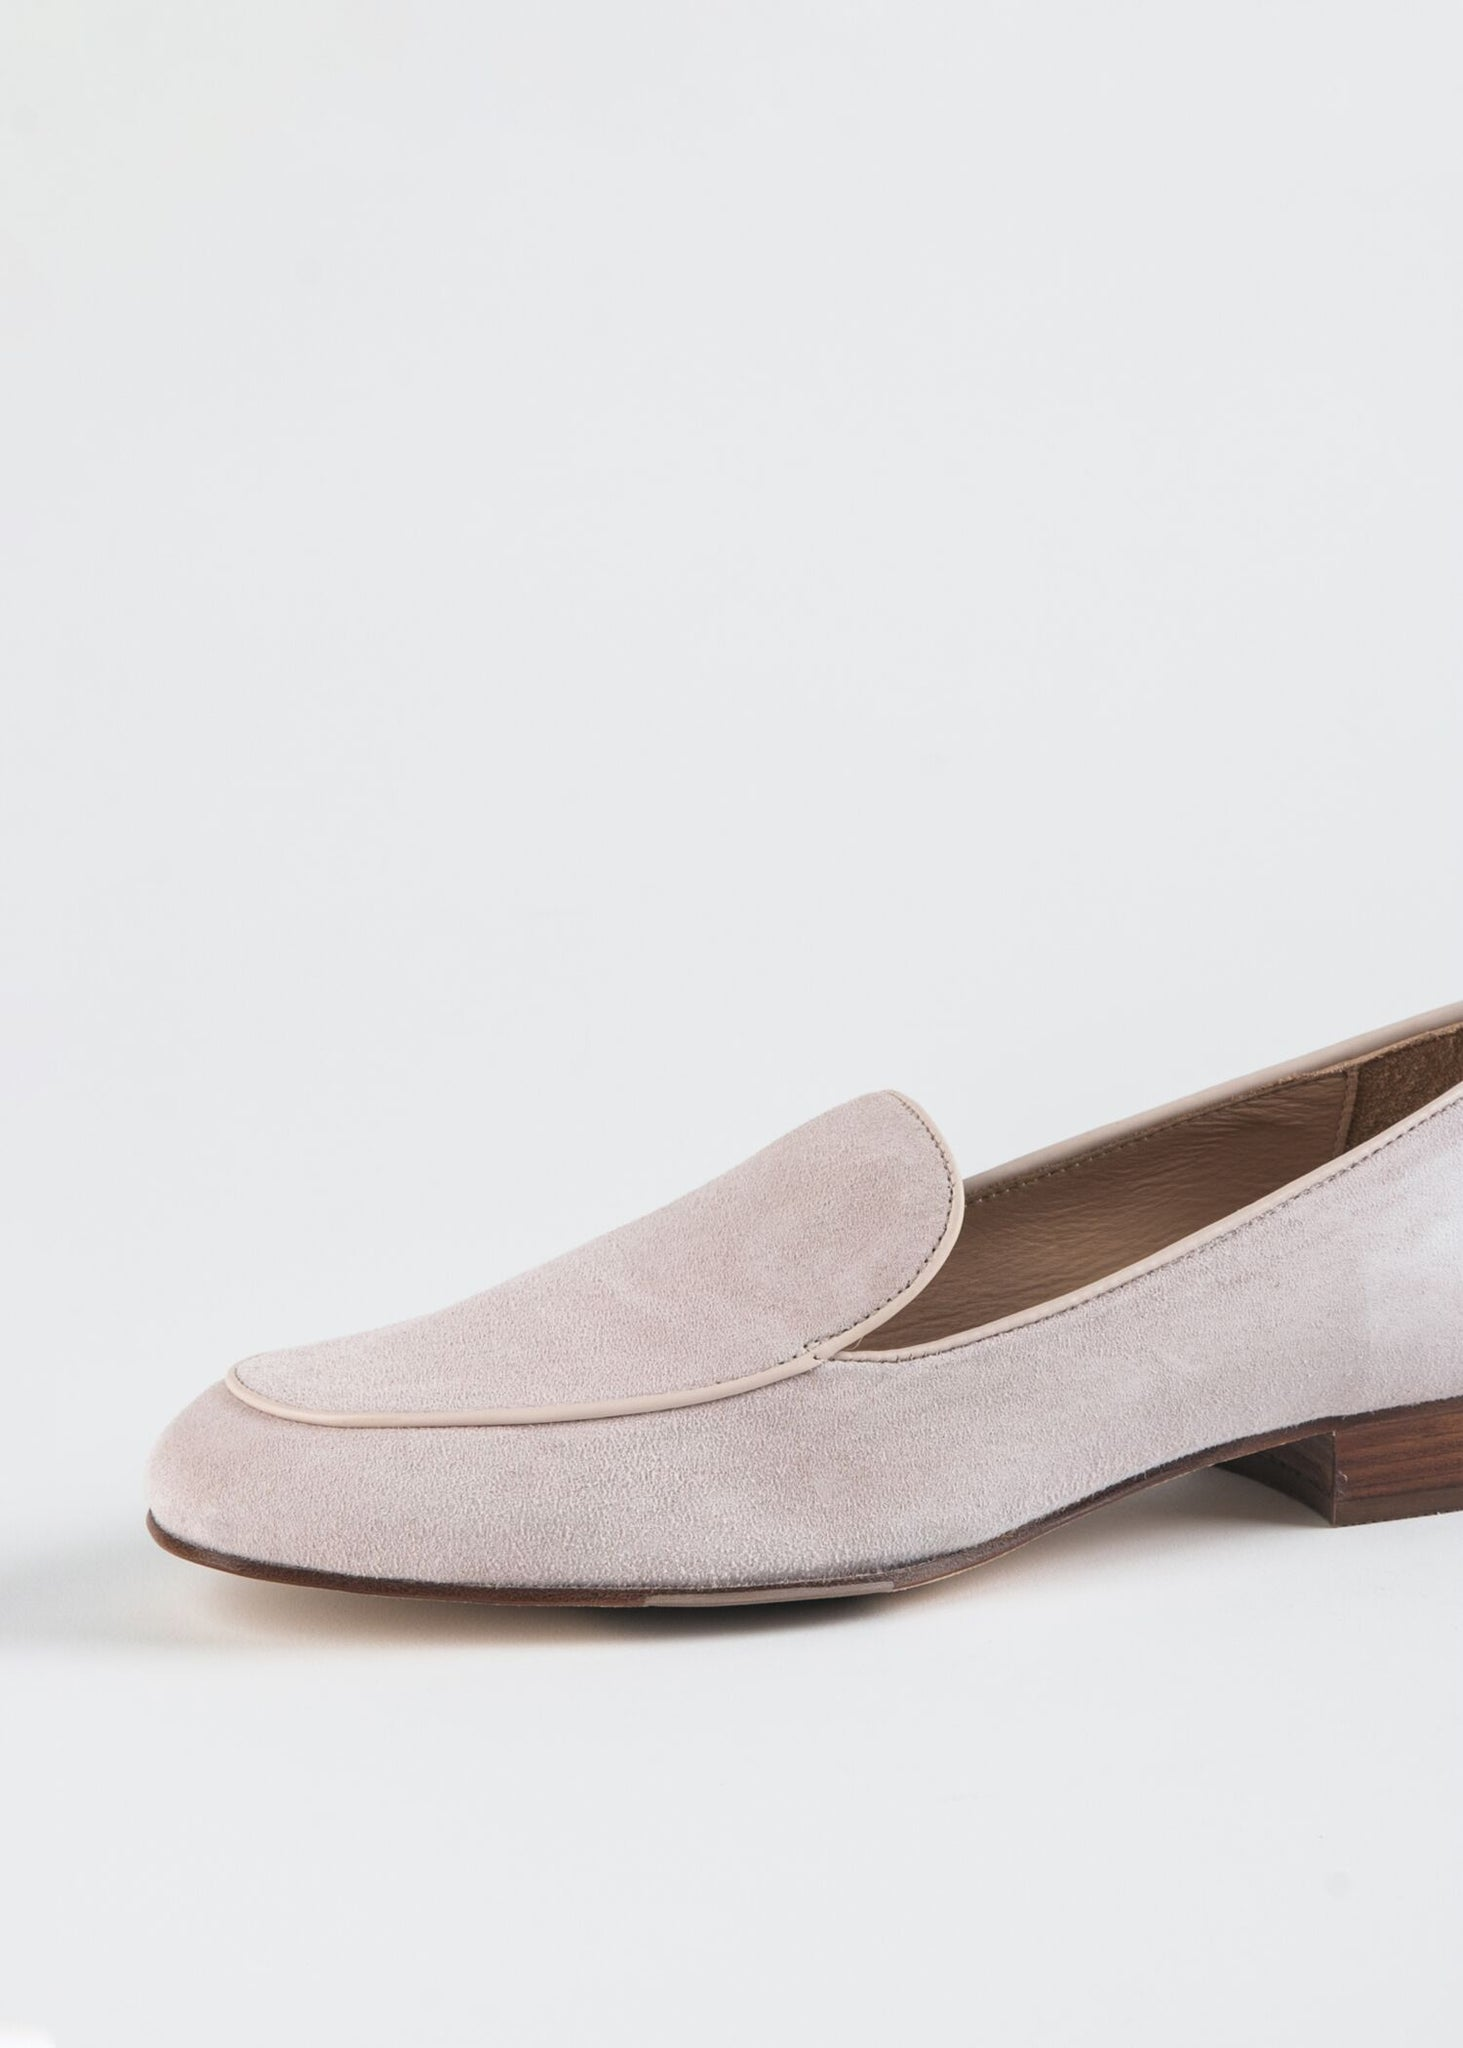 TAPERED ROUND TOE LOAFER